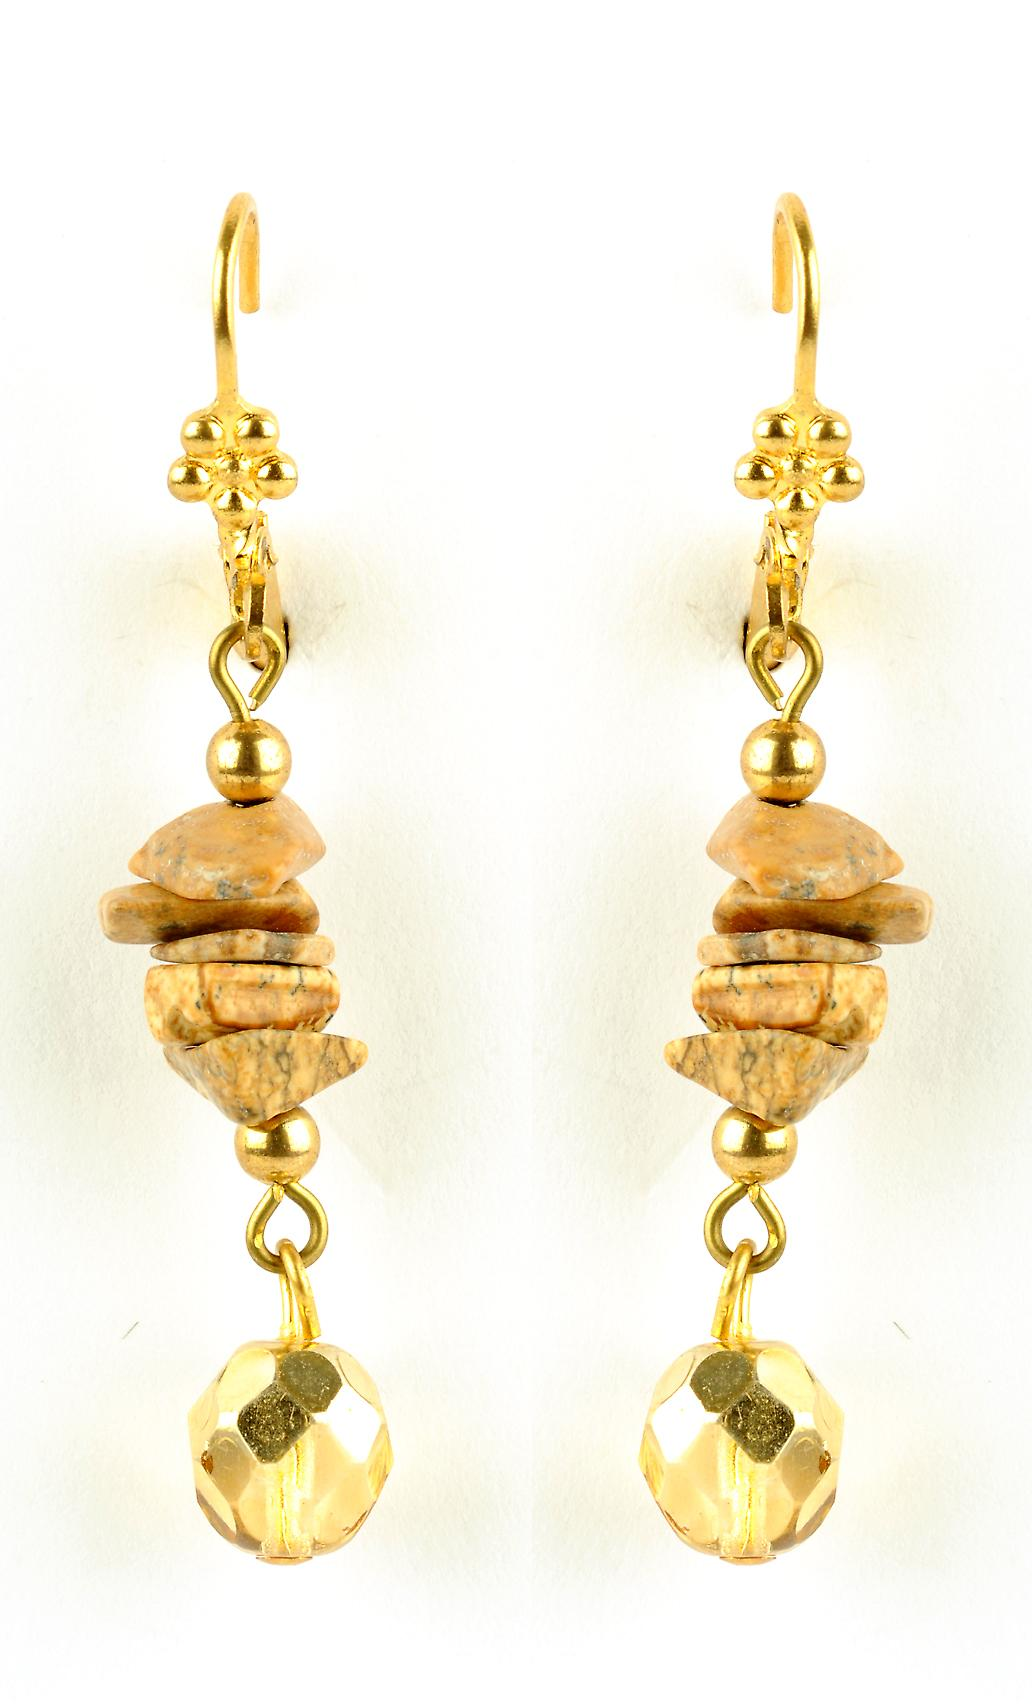 Waooh - jewelry - WJ0808 - earrings with Swarovski yellow & semi-precious stones - mount silver rhinestones